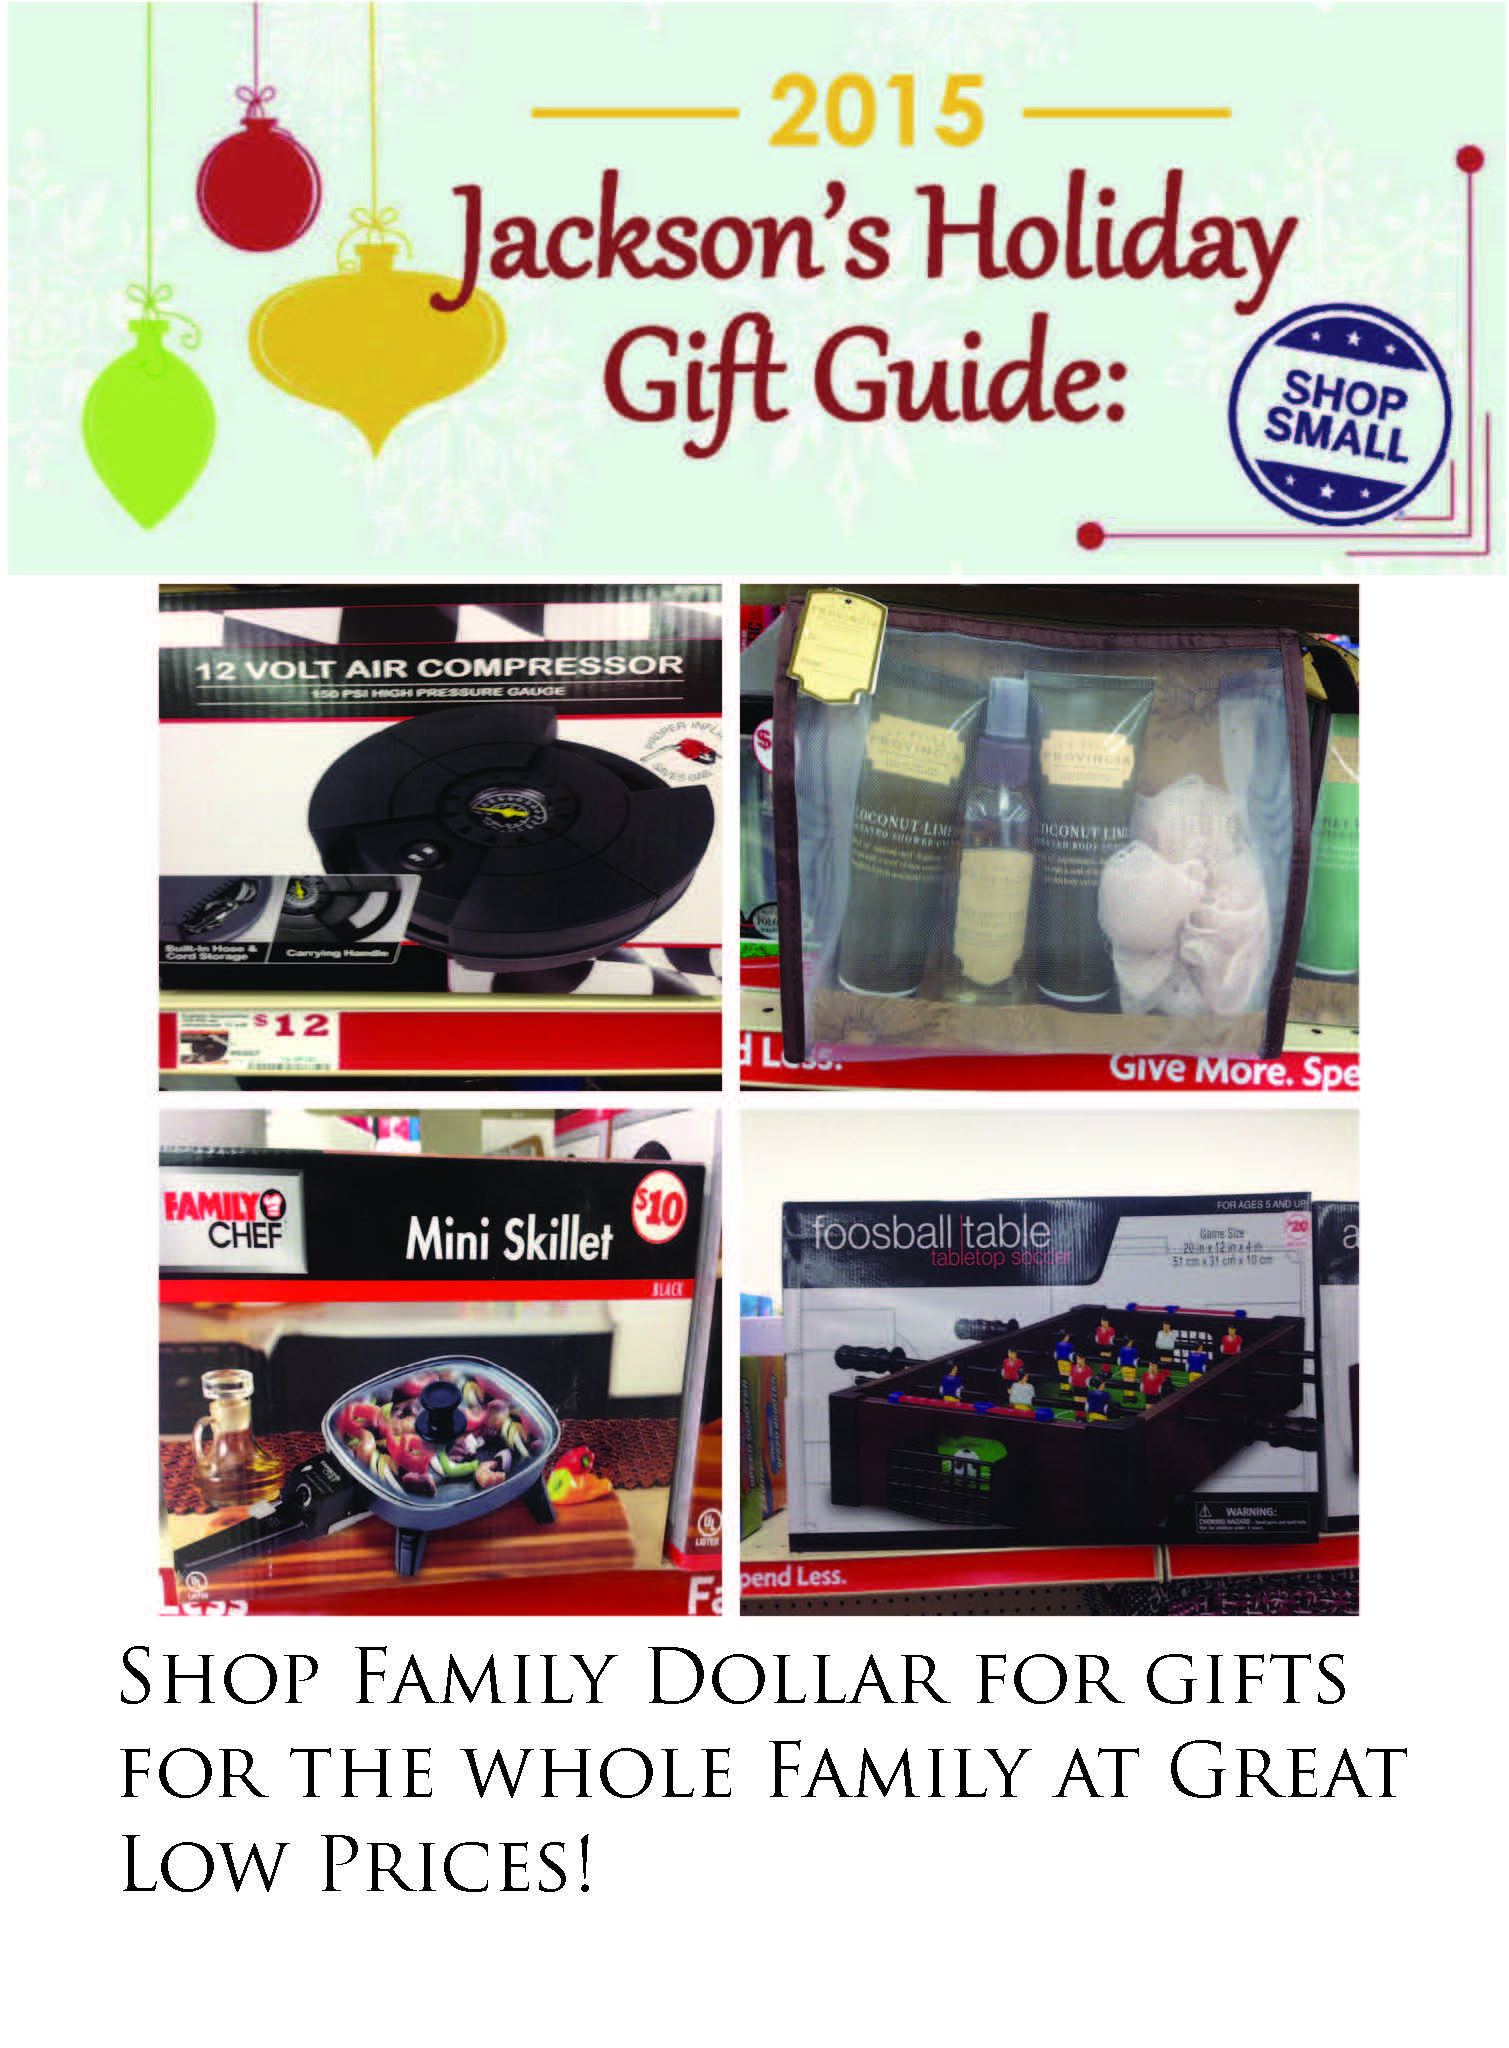 Gift_Guide_Family_Dollar.jpg